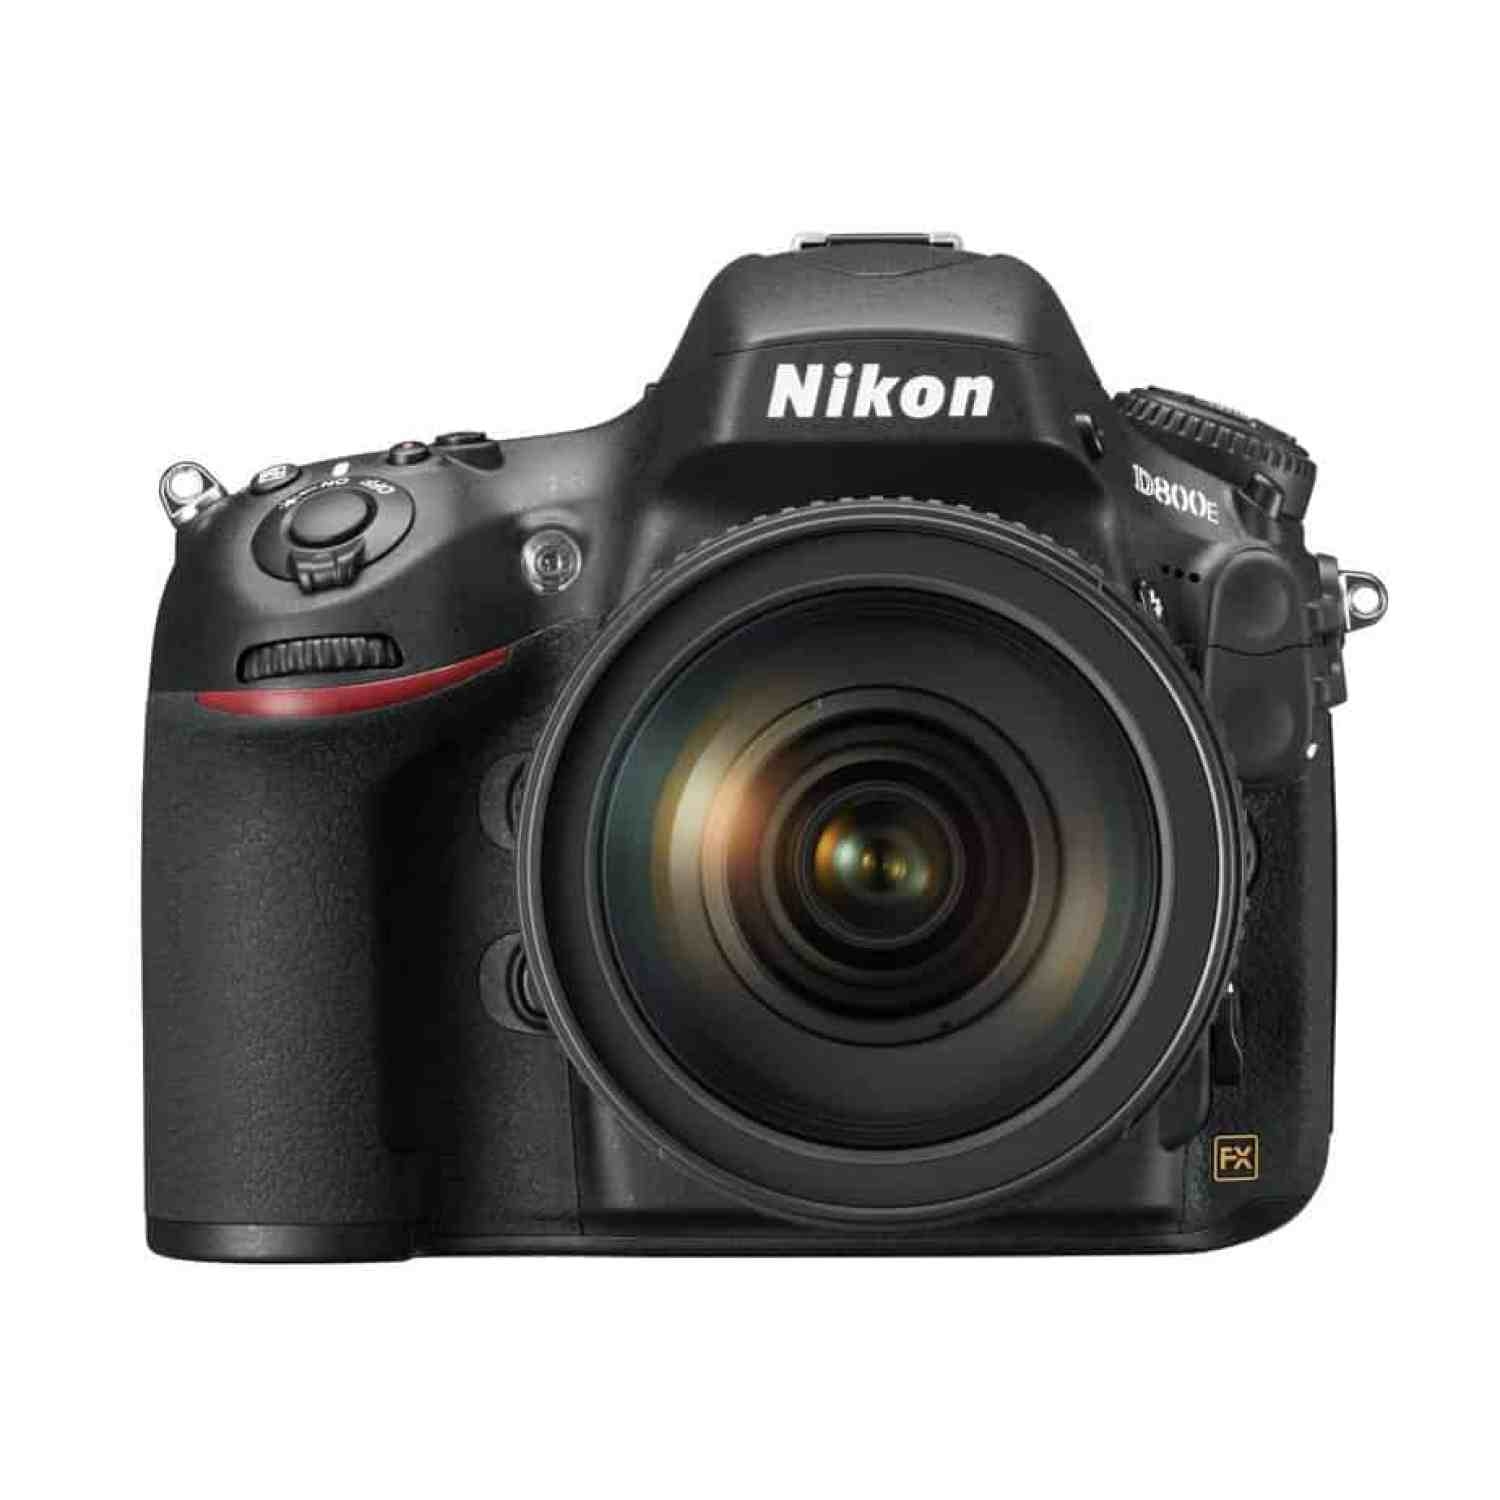 photography gear what do I need to start as a photographer